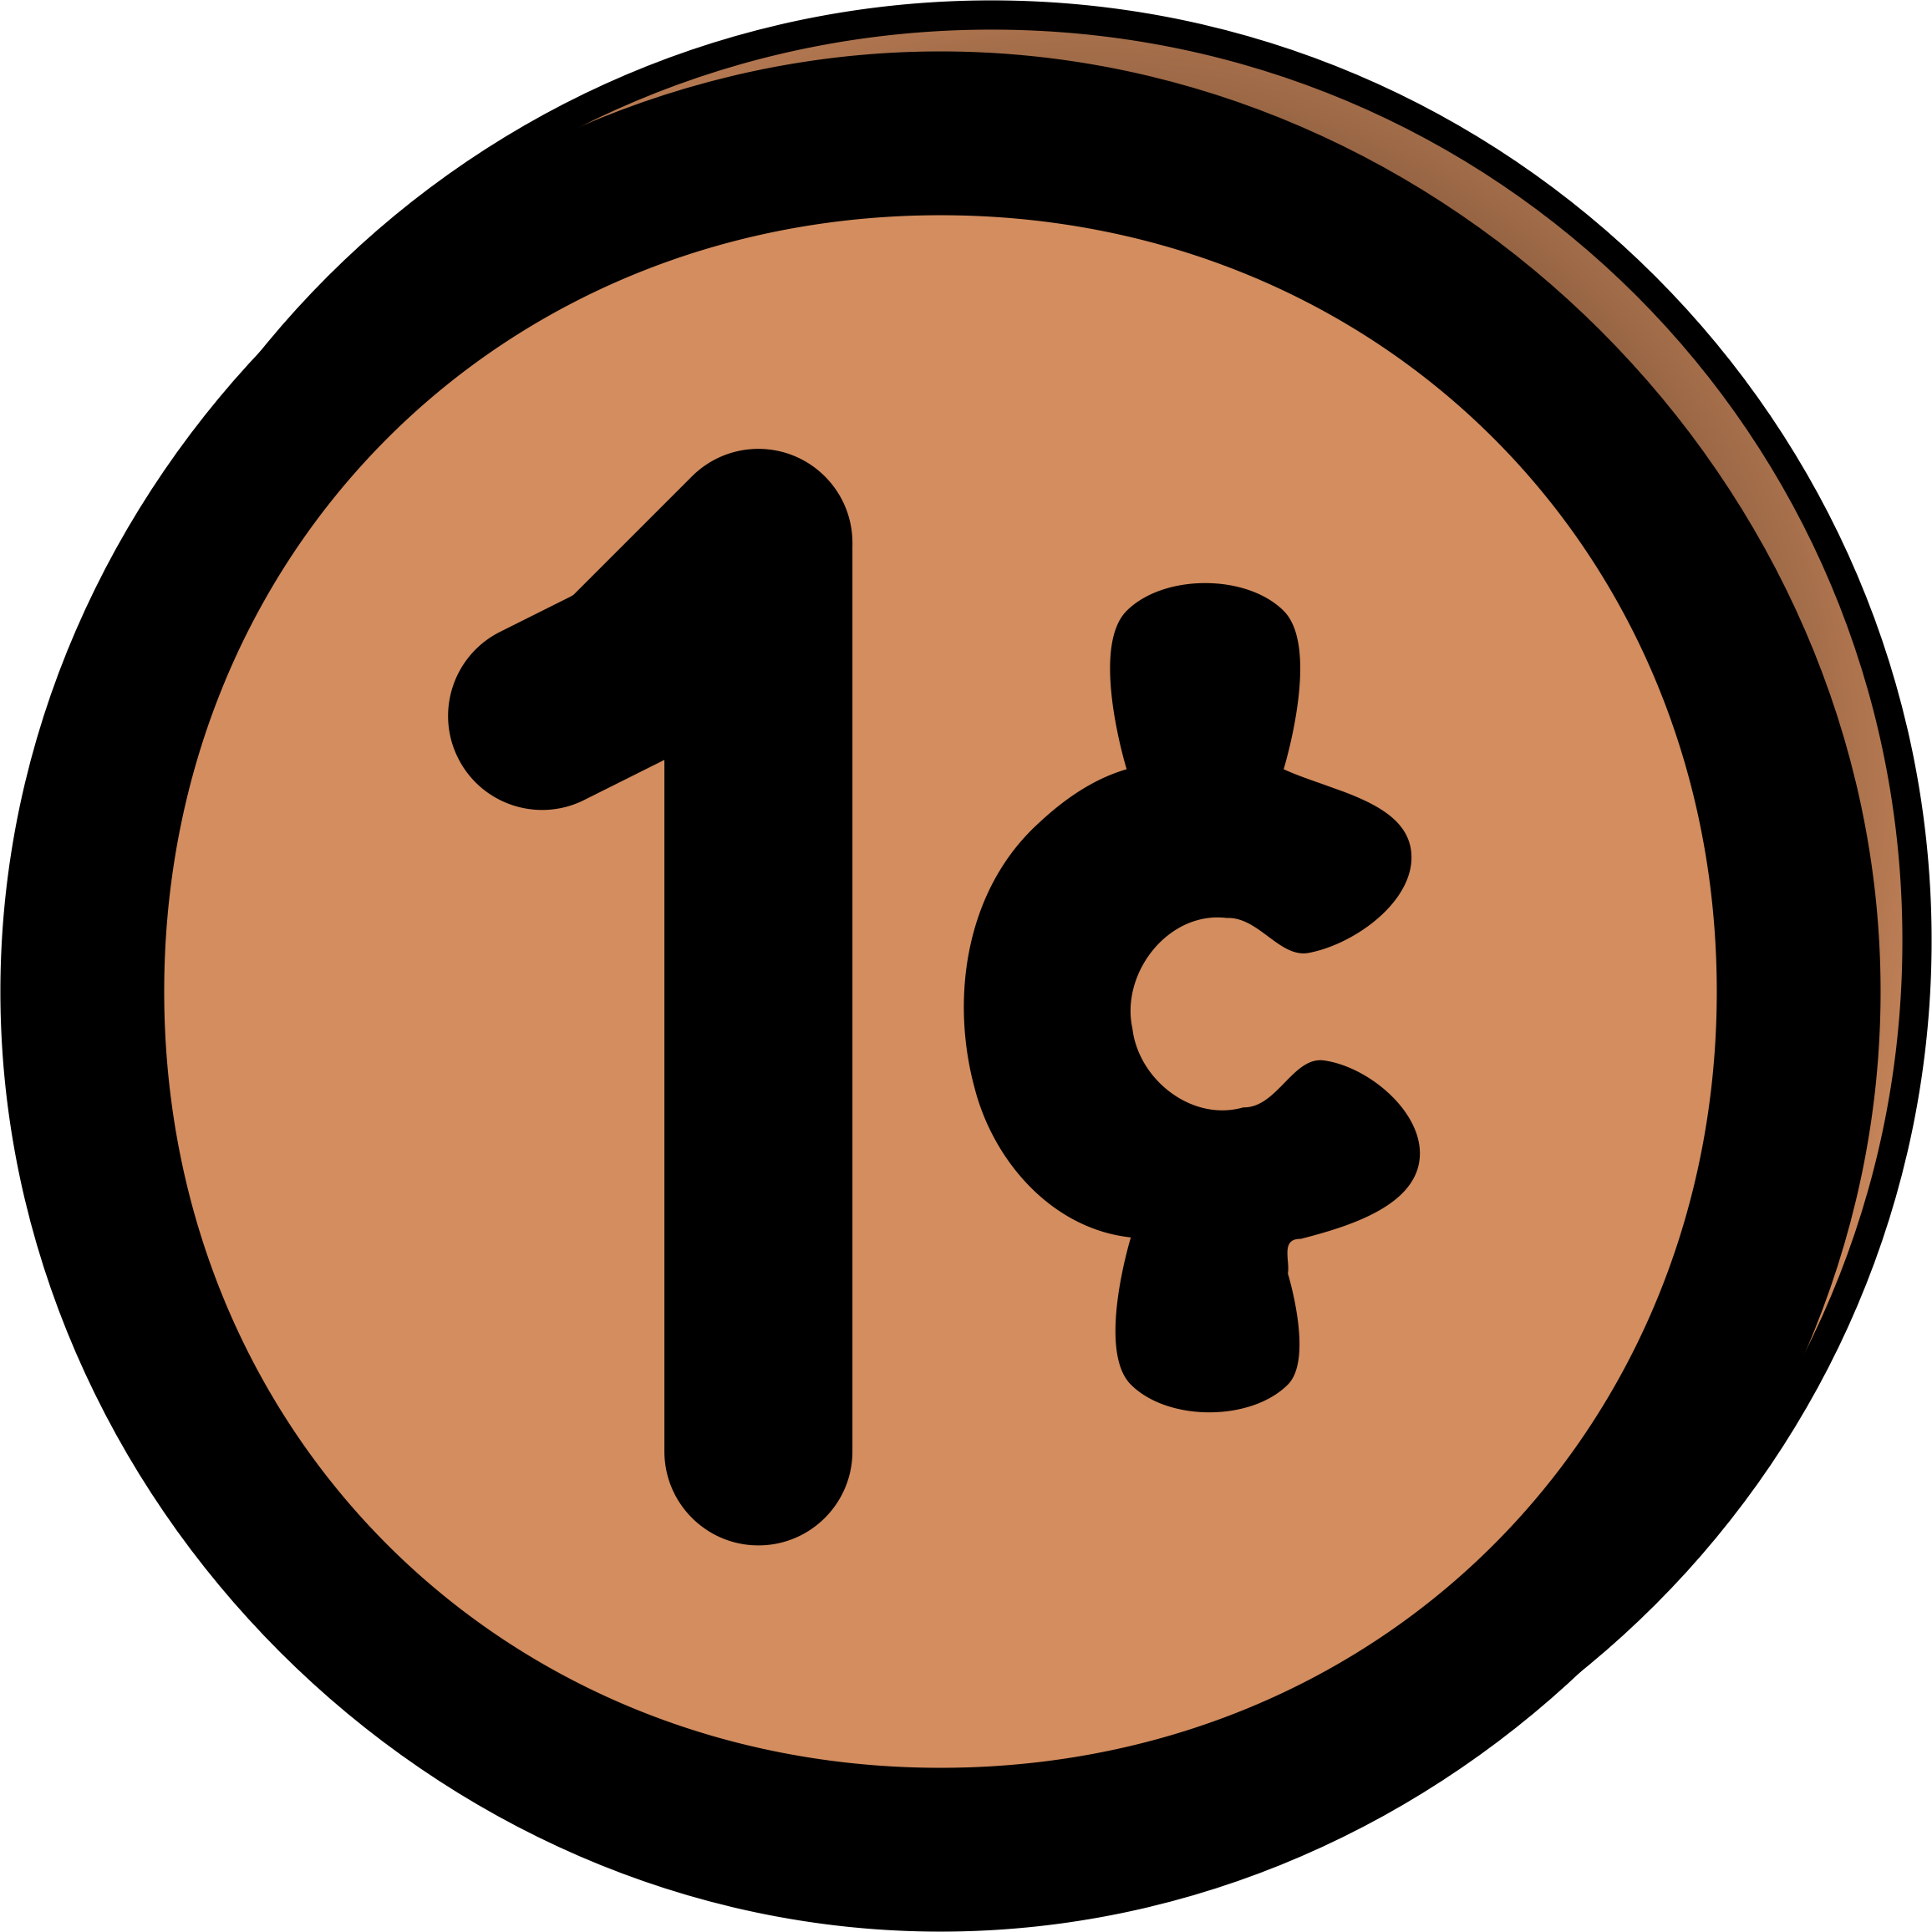 Proud clipart penny. Big image png